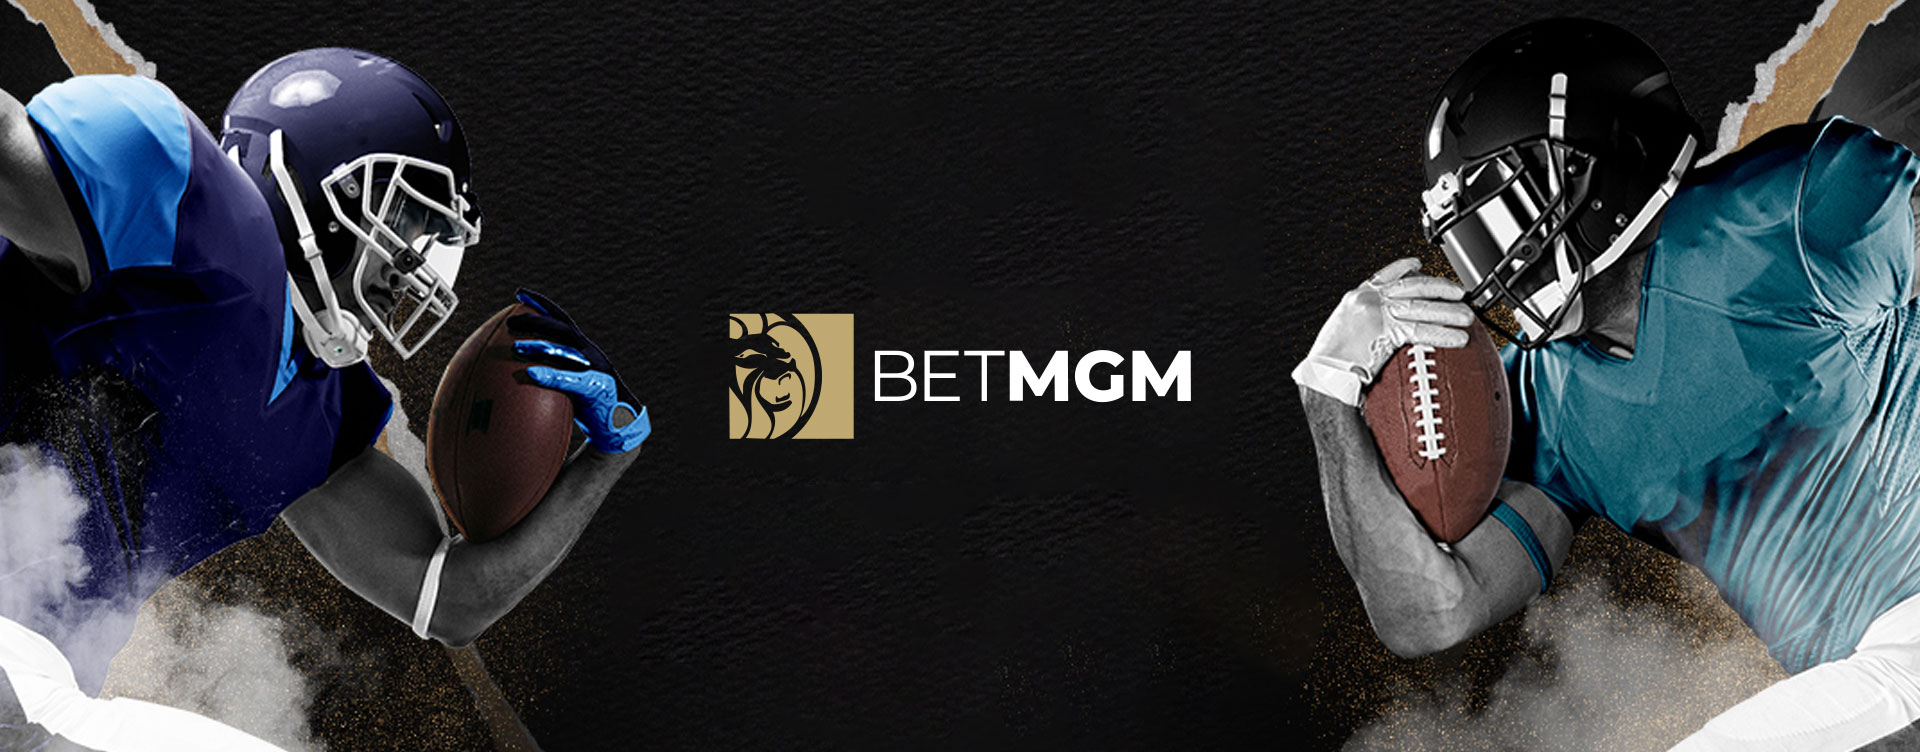 BetMGM Online Casino's Great Bonuses for New Clients: $25 Free!